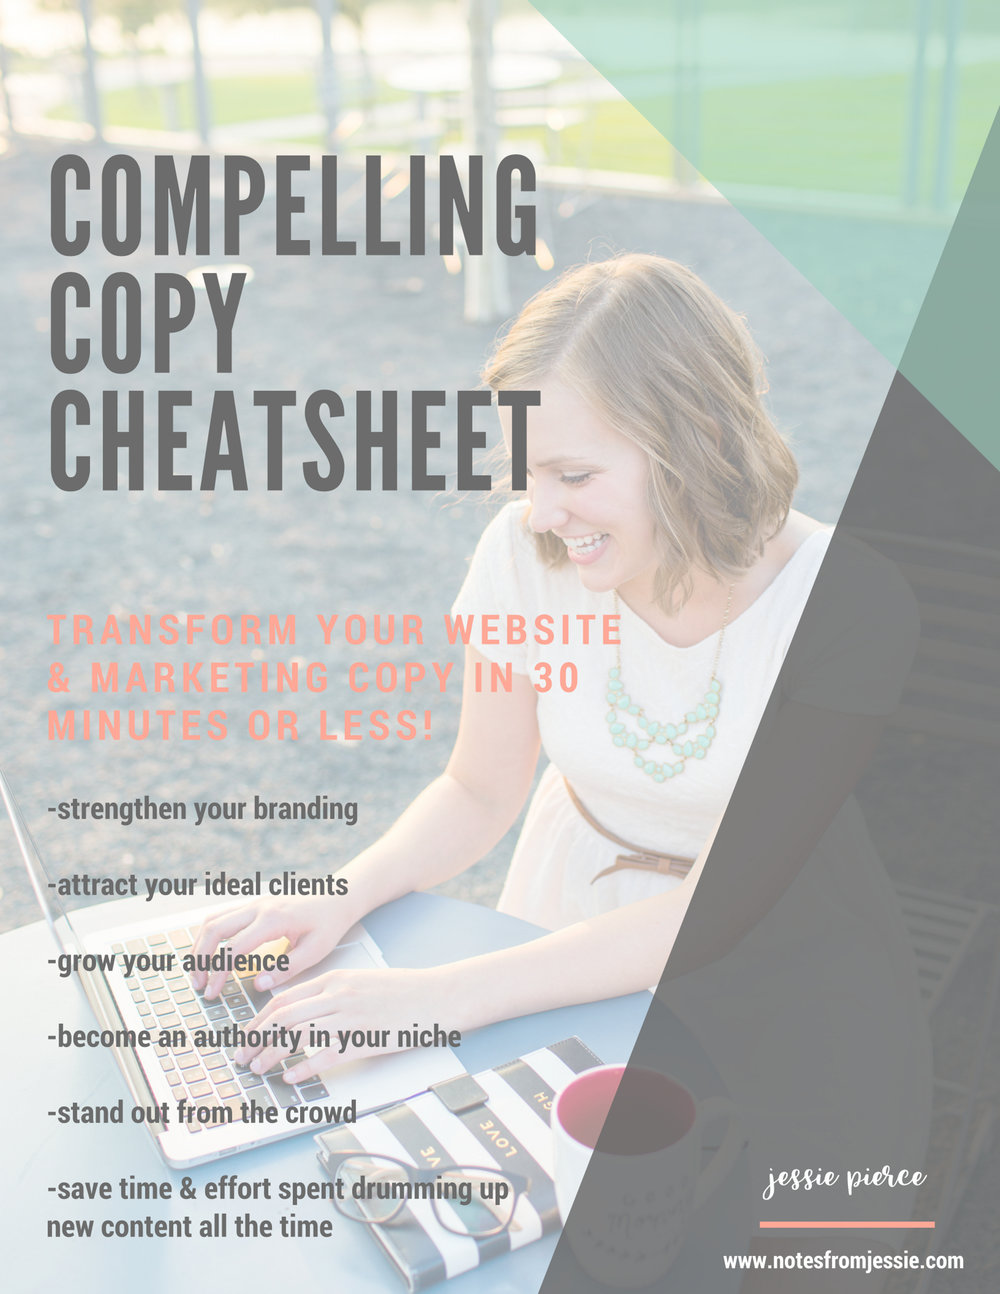 Get your instant download of the printable guide for creating compelling copy that converts! - And don't forget to check your email inbox (and maybe spam folder) for more encouragement to create a life and business you love!